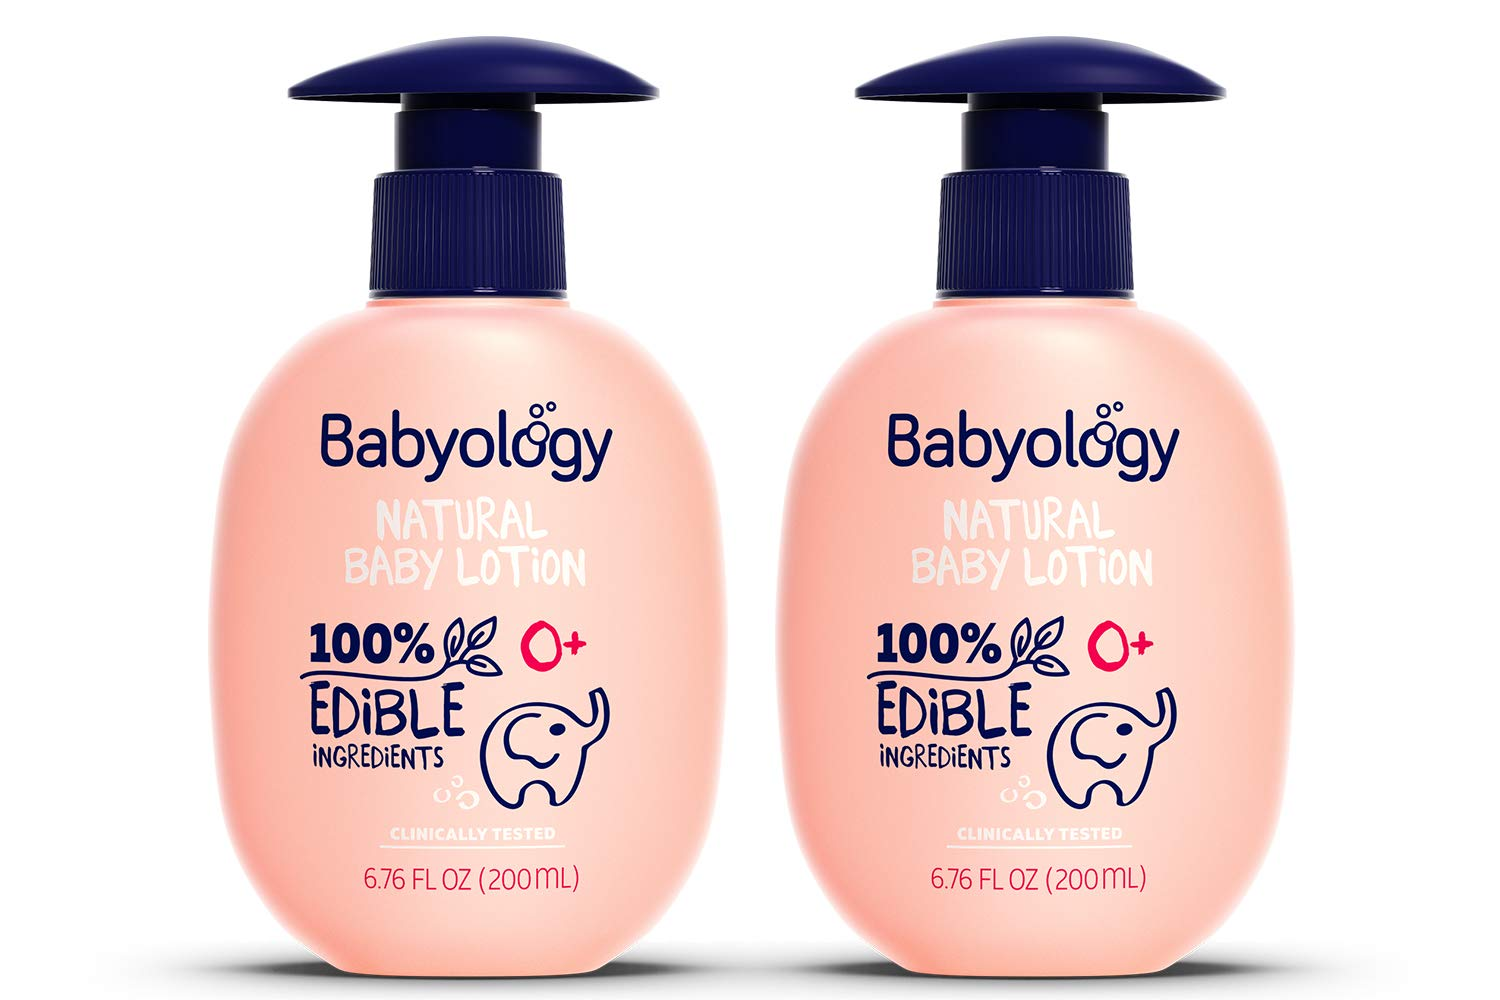 Babyology - 100% Edible Ingredients - Organic Baby Lotion - Clinically Tested - 6,67 FL. OZ - Calming & Rich Moisture for Sensitive Skin - Daily Care - Non-scented - Perfect Baby Shower Gift (2 Pack) by Babyology